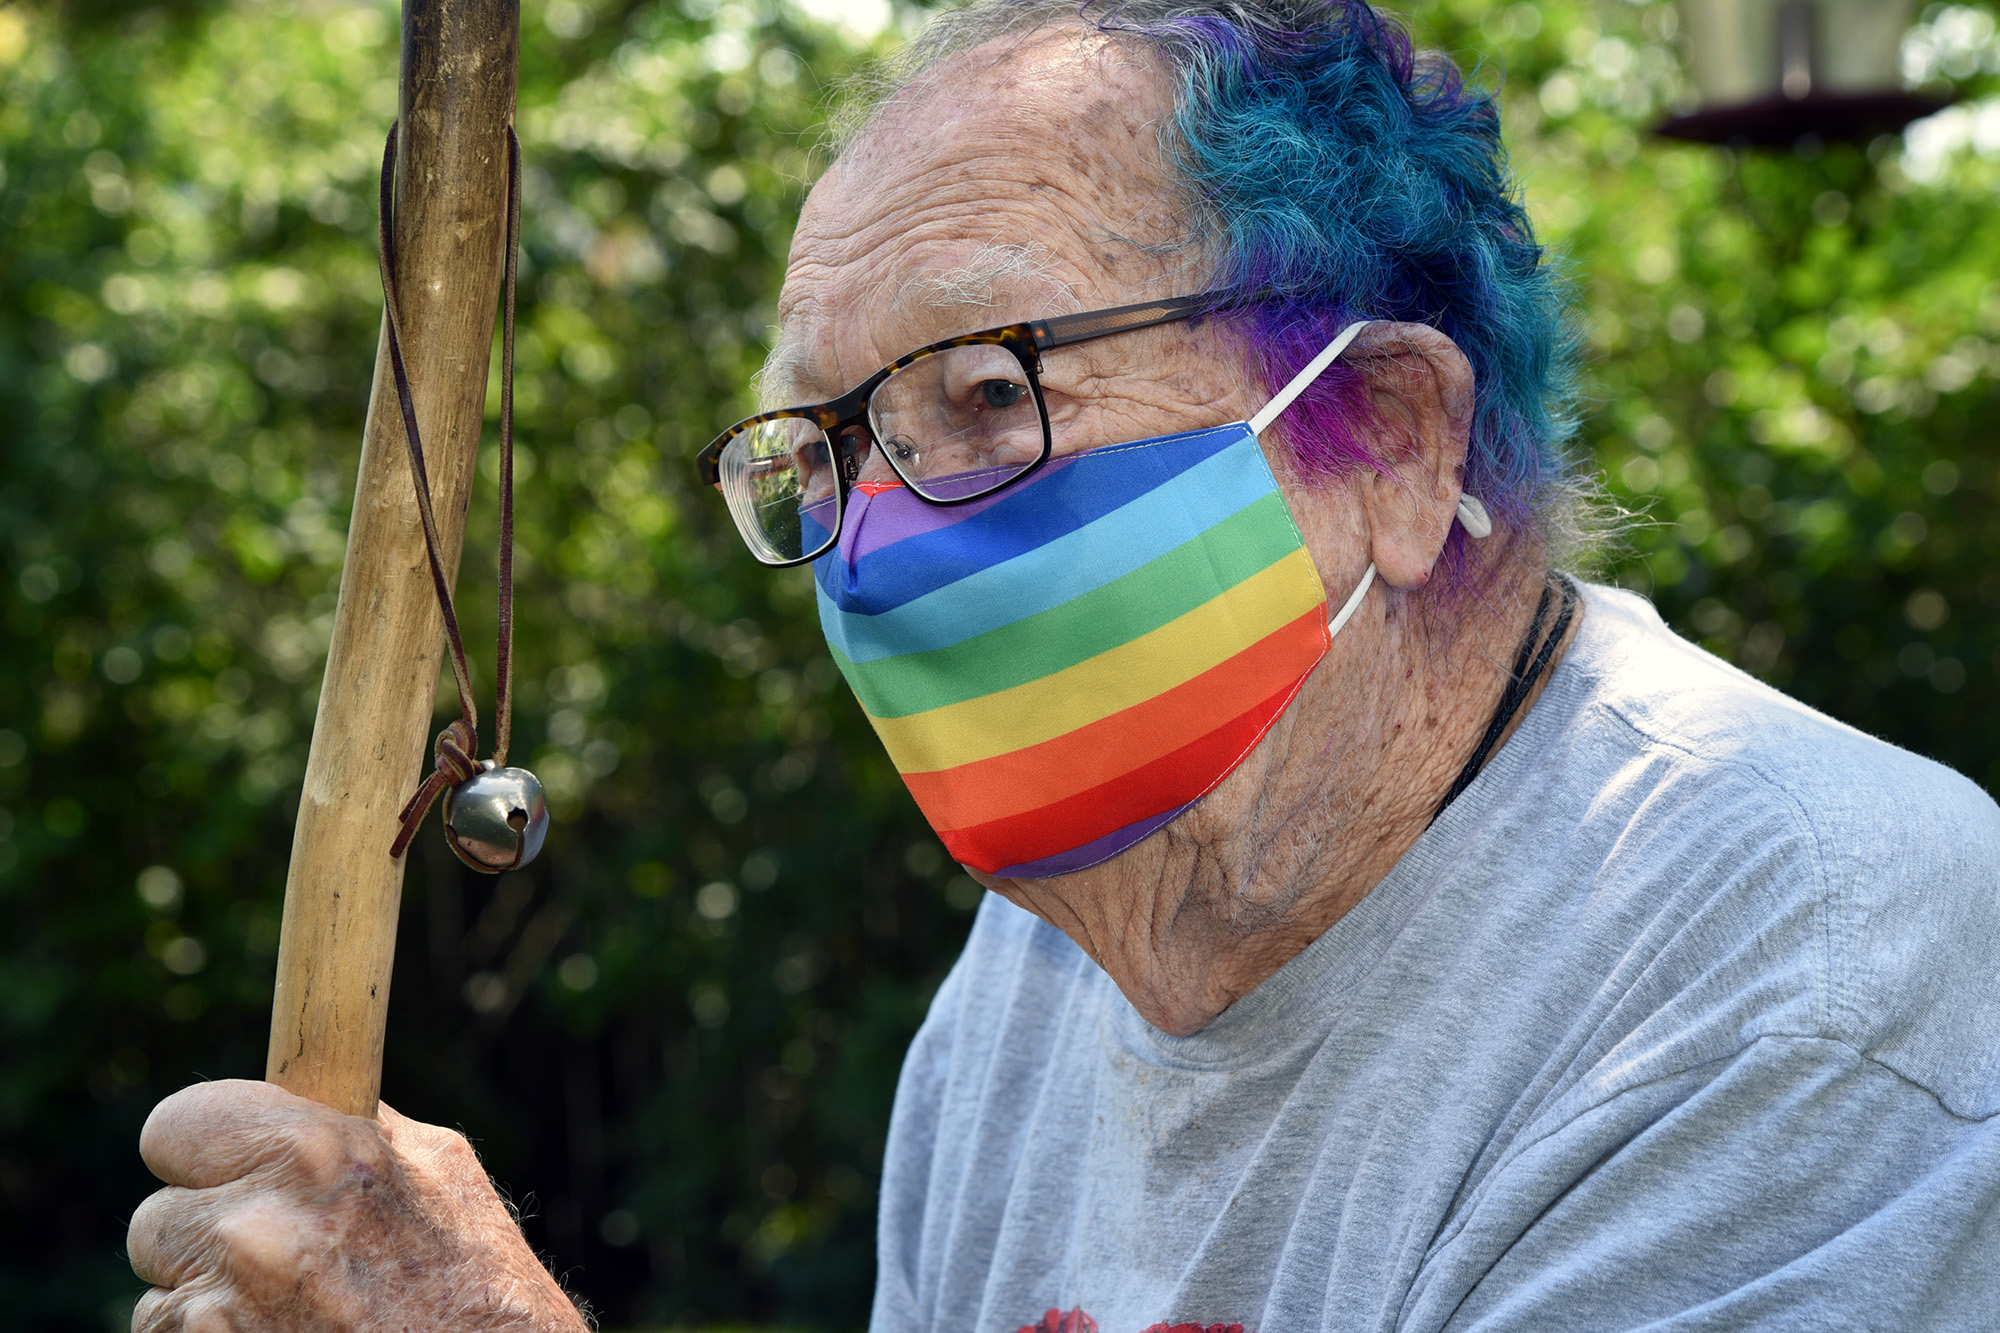 A friend dyed part of Ken Felts's hair blue and pink.  After a lifetime of dressing conservatively, he has a new array of rainbow clothing. It makes him happy to wear it.